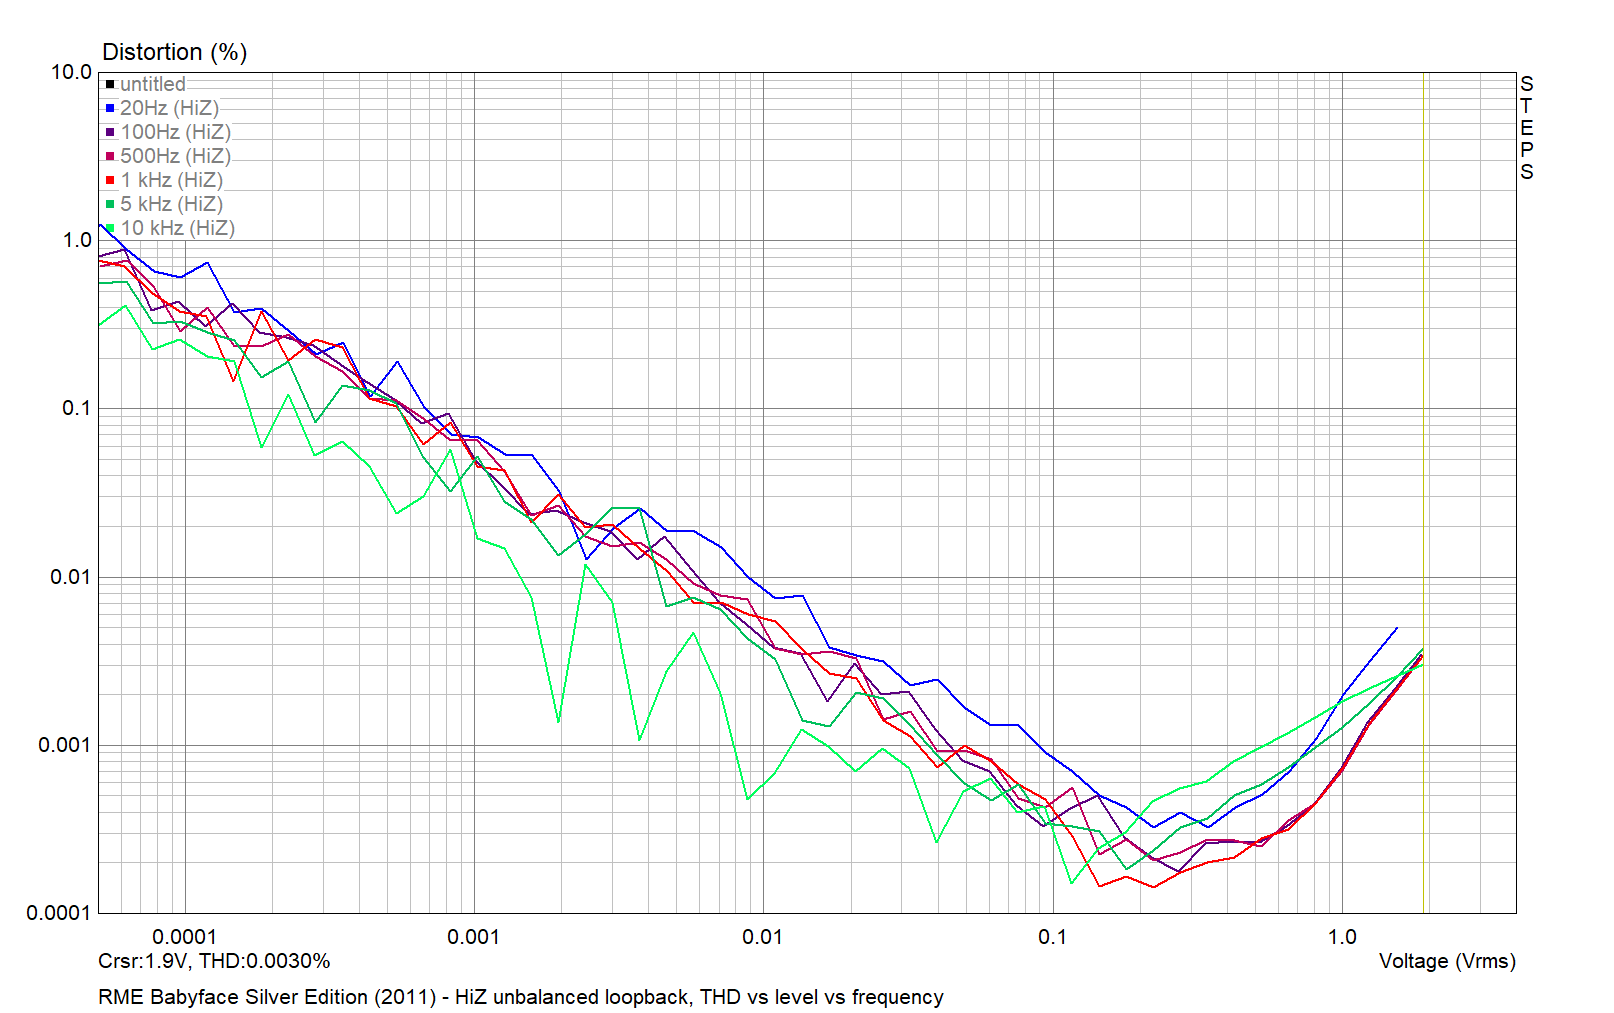 RME Babyface Silver Edition 2011 - HiZ unbalanced THD vs level vs frequency 2021-04-01.png